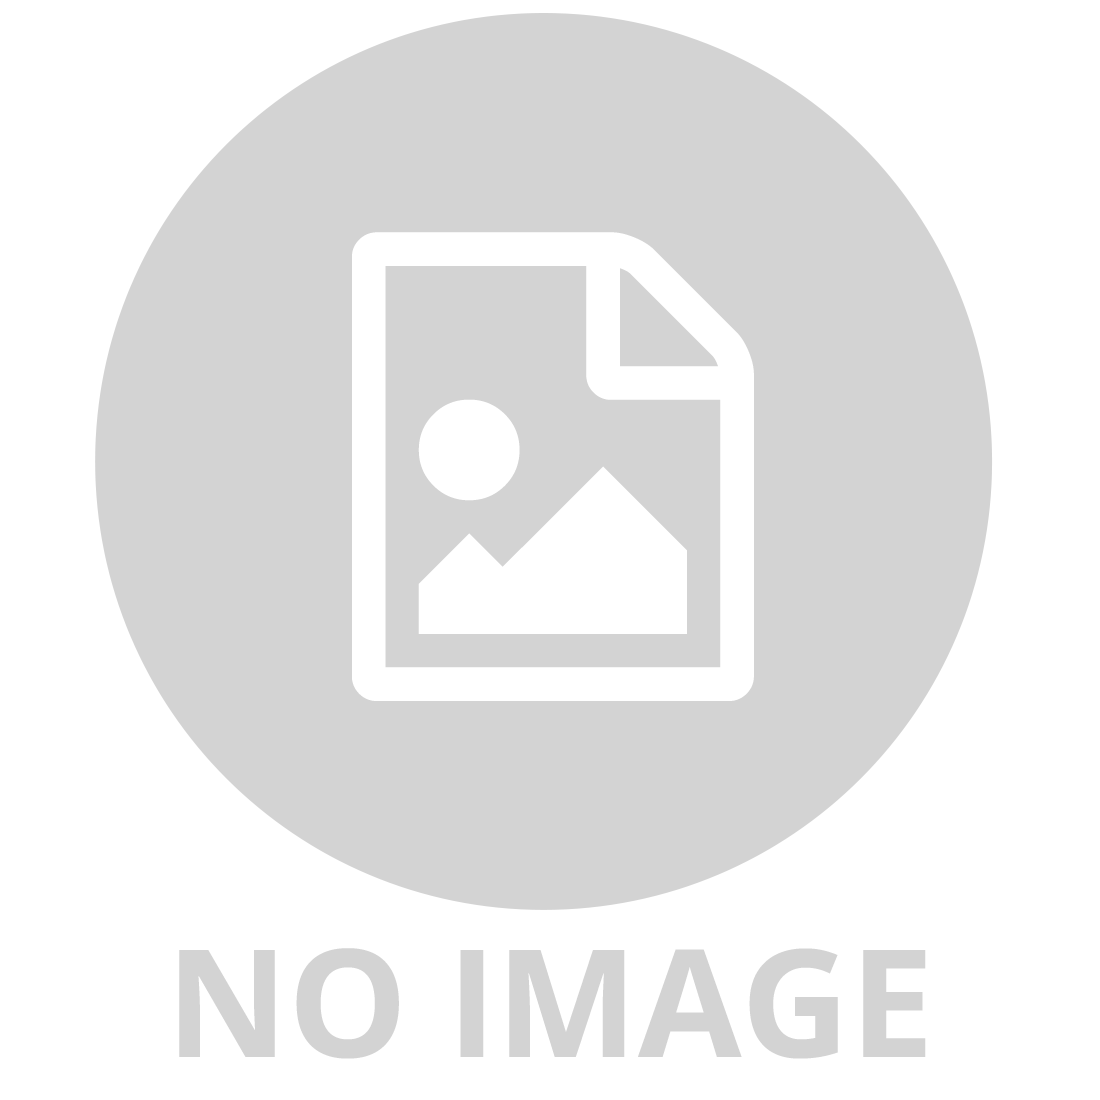 ROBO ALIVE JUNIOR ROBOTIC BABY SHARK BATH TOY ASSORTED